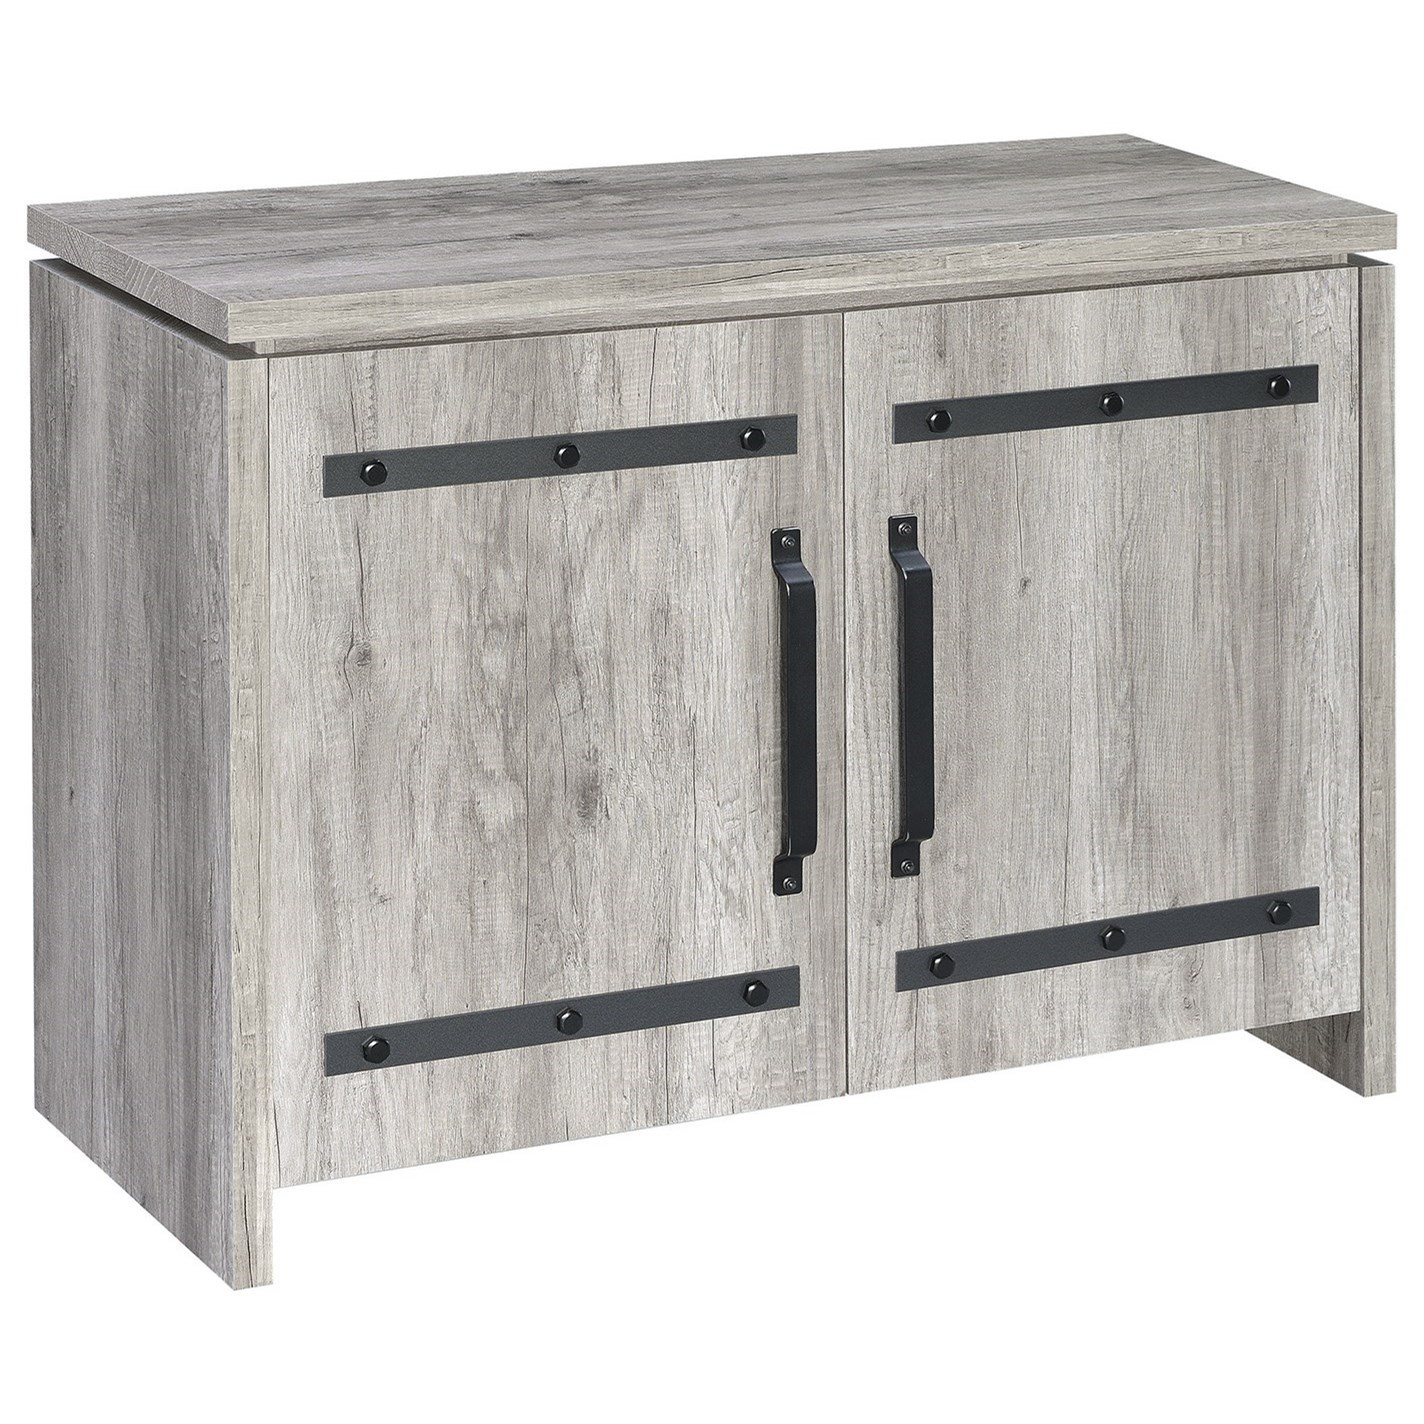 Coaster Accent Cabinets Rustic Grey Accent Cabinet   Coaster Fine Furniture